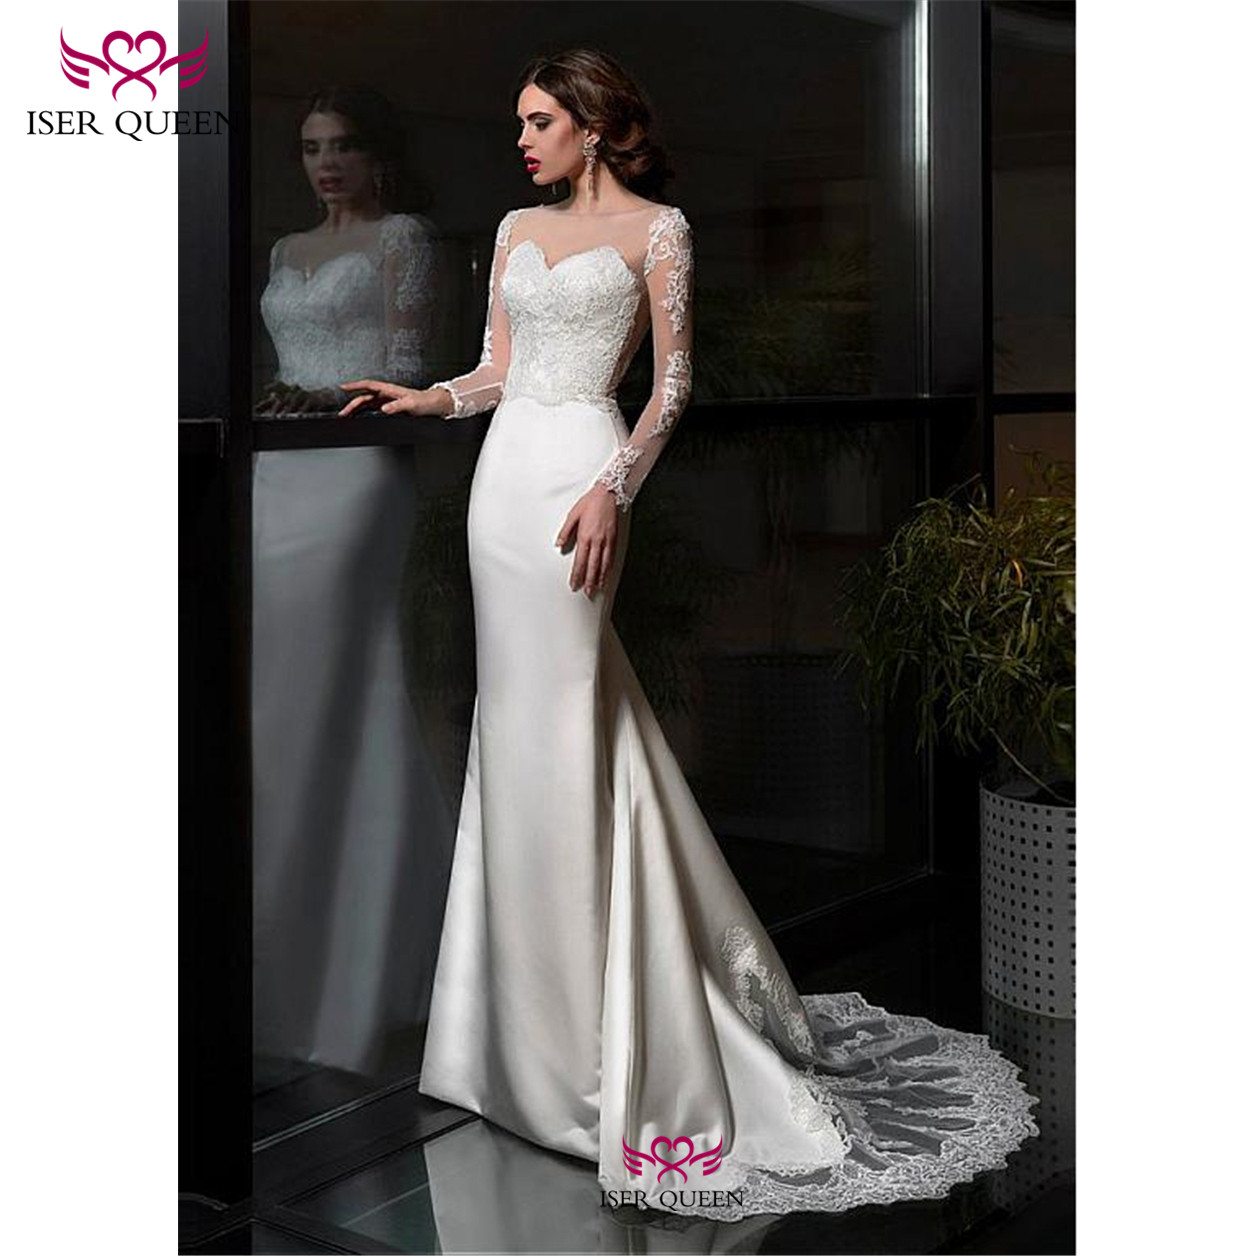 Long Sleeves Embroidered Lace On Net Sweetheart Neck Mermaid Wedding Dresses Illusion Lustrous Satin свадебные платья W0680